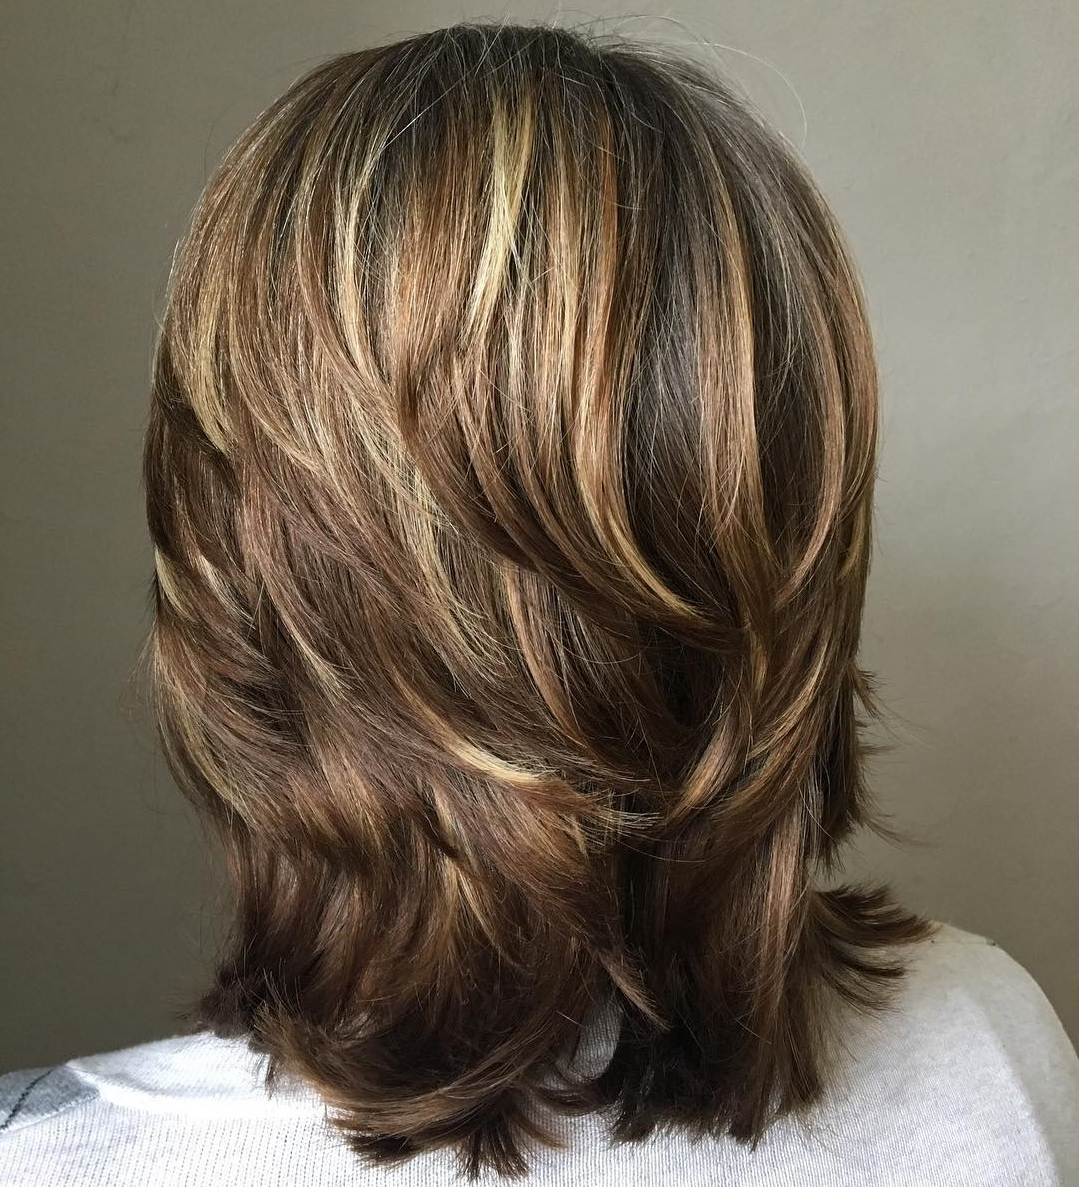 Fashionable Mid Back Brown U Shaped Haircuts With Swoopy Layers With 60 Most Universal Modern Shag Haircut Solutions (View 6 of 20)